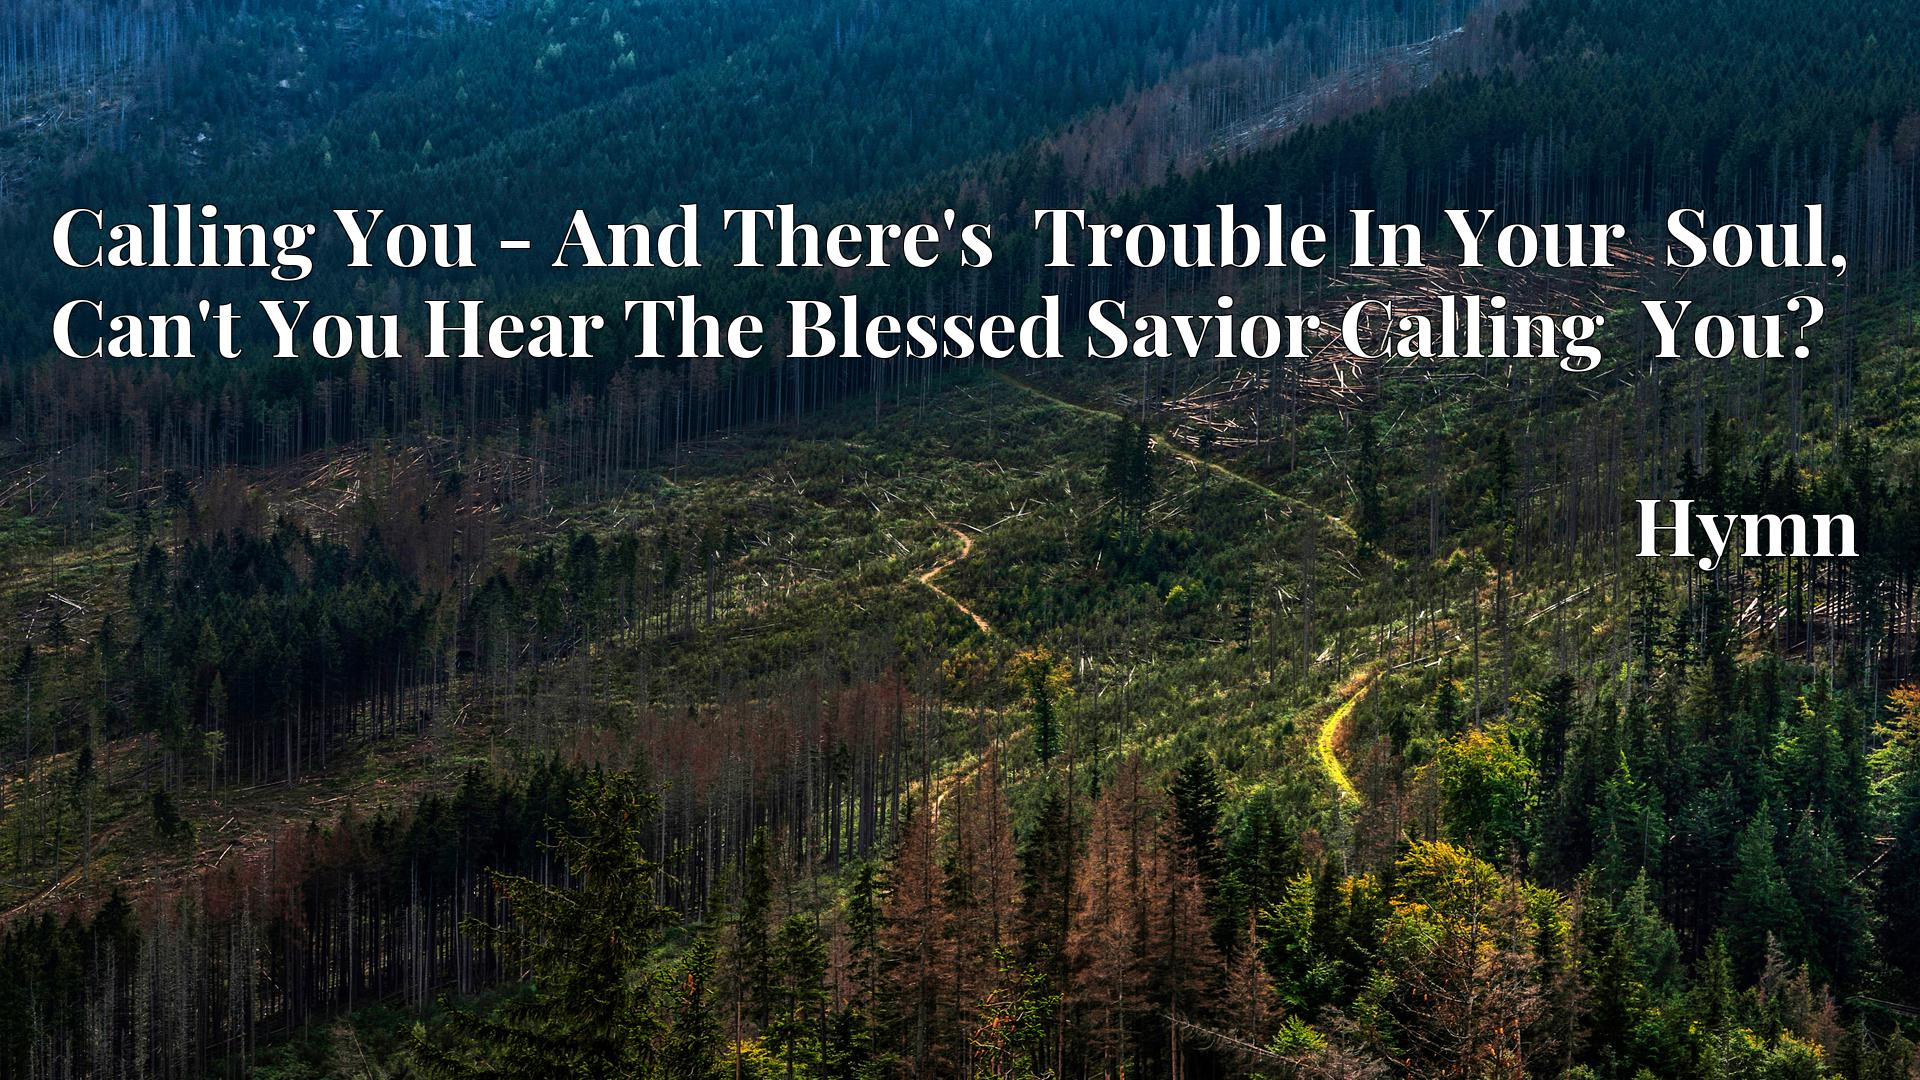 Calling You - And There's  Trouble In Your  Soul, Can't You Hear The Blessed Savior Calling  You? - Hymn